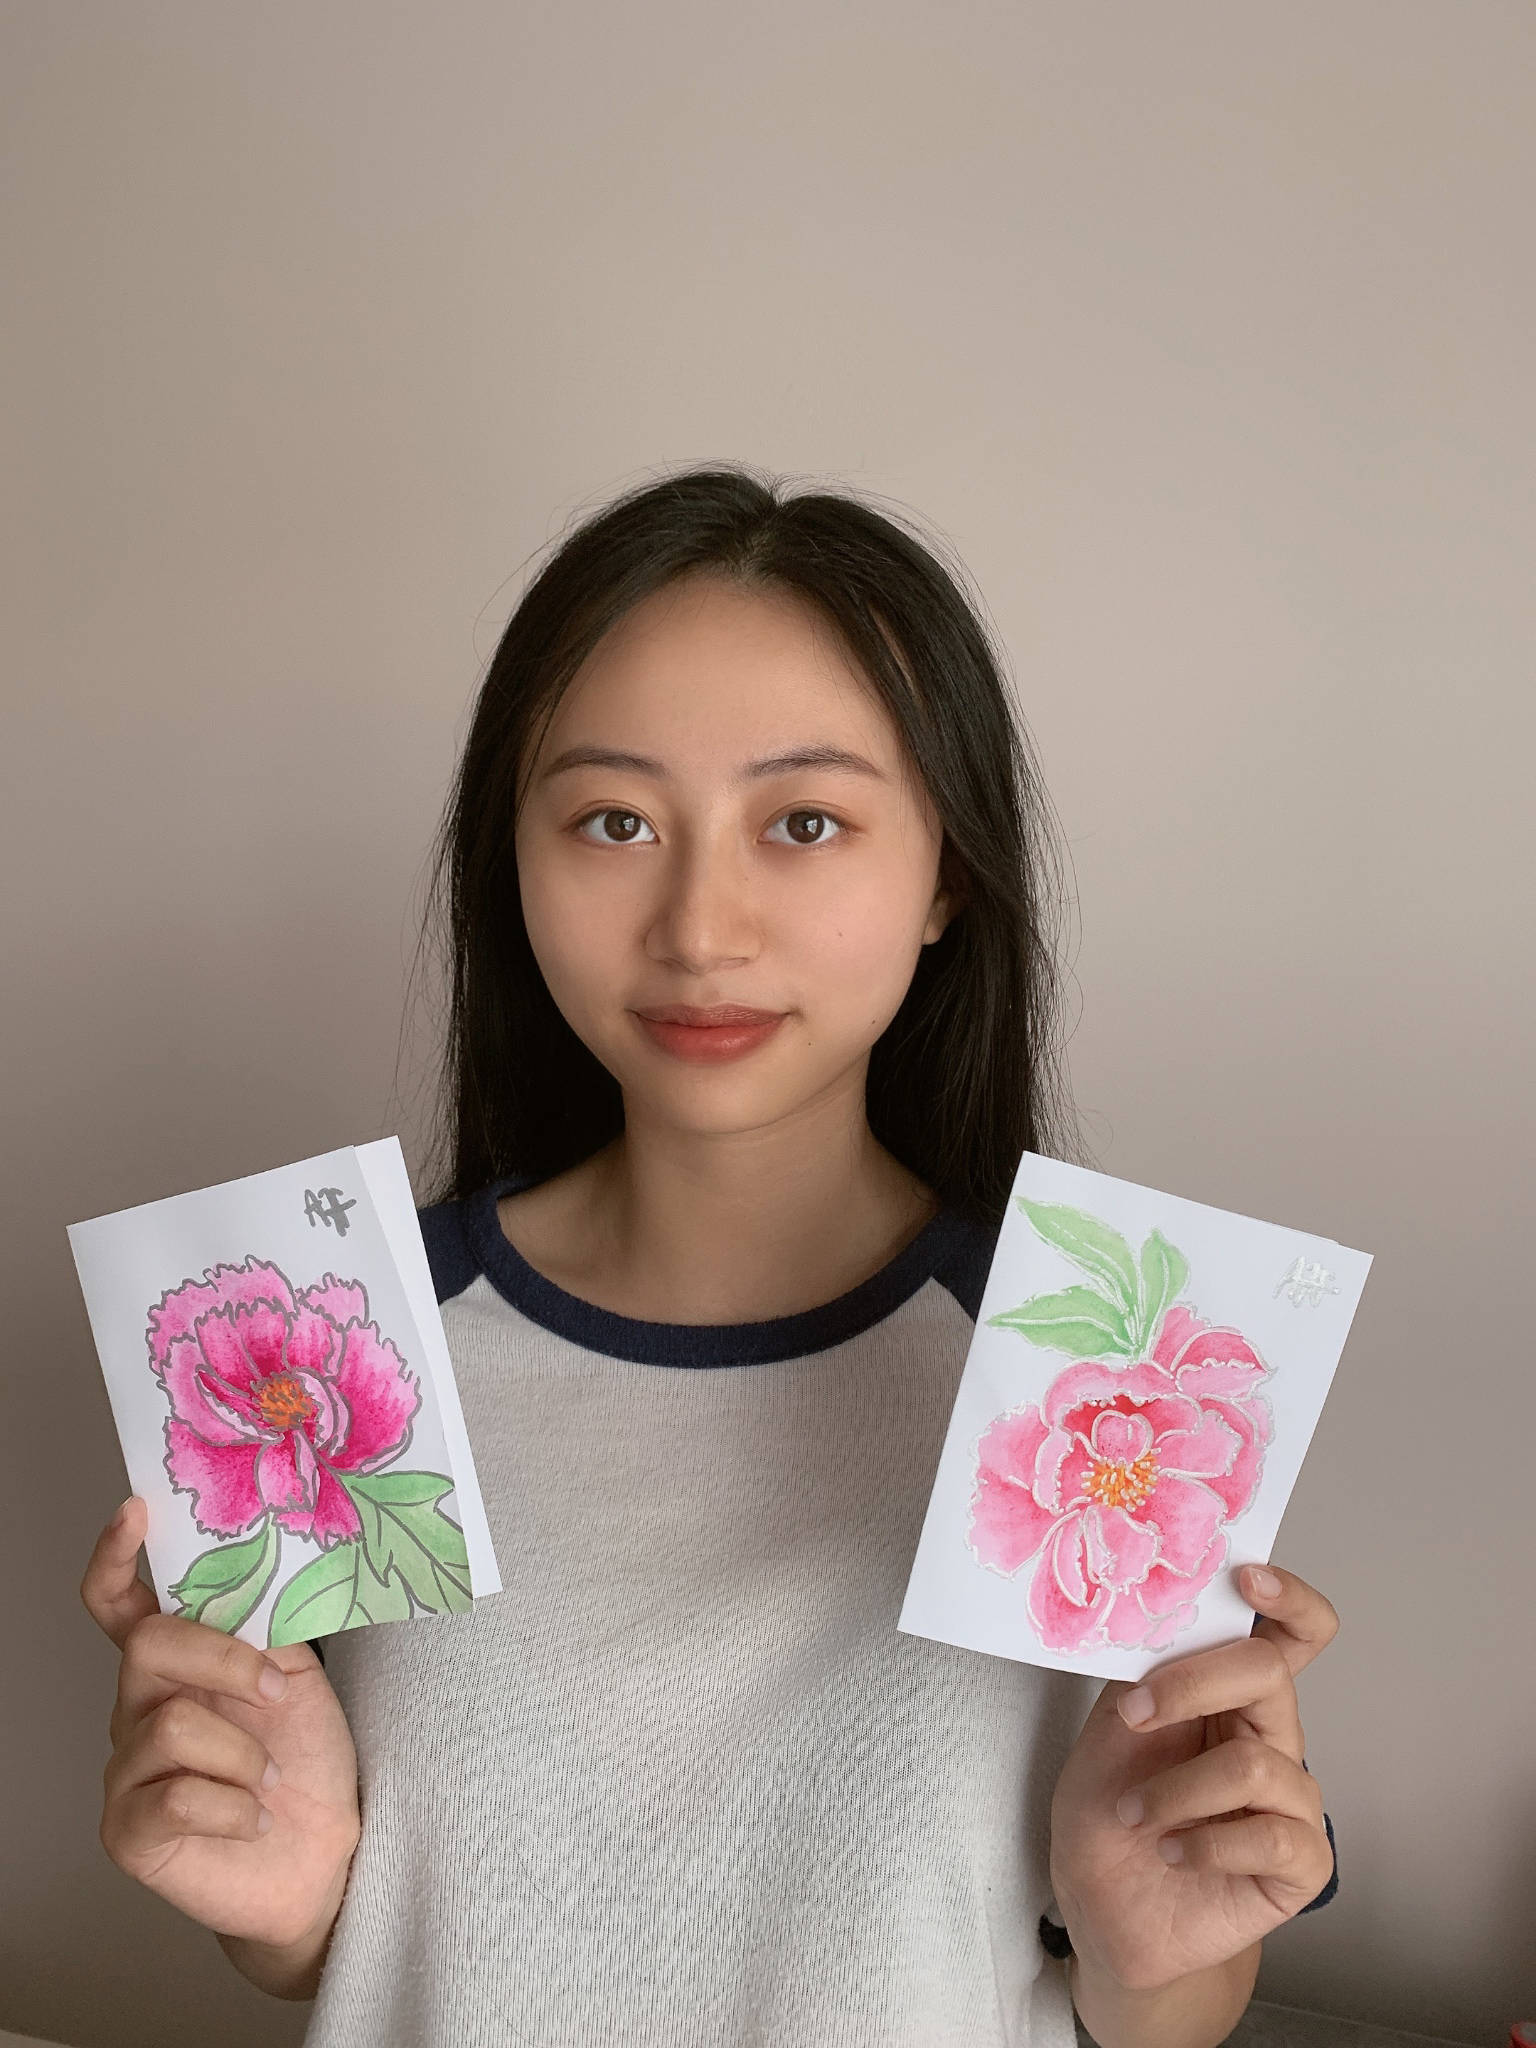 Alice He, Drade 12 student at R.E. Mountain Secondary started the Handmade Cards Project card project for Langley seniors. (Alice He/Special to Langley Advance Times)